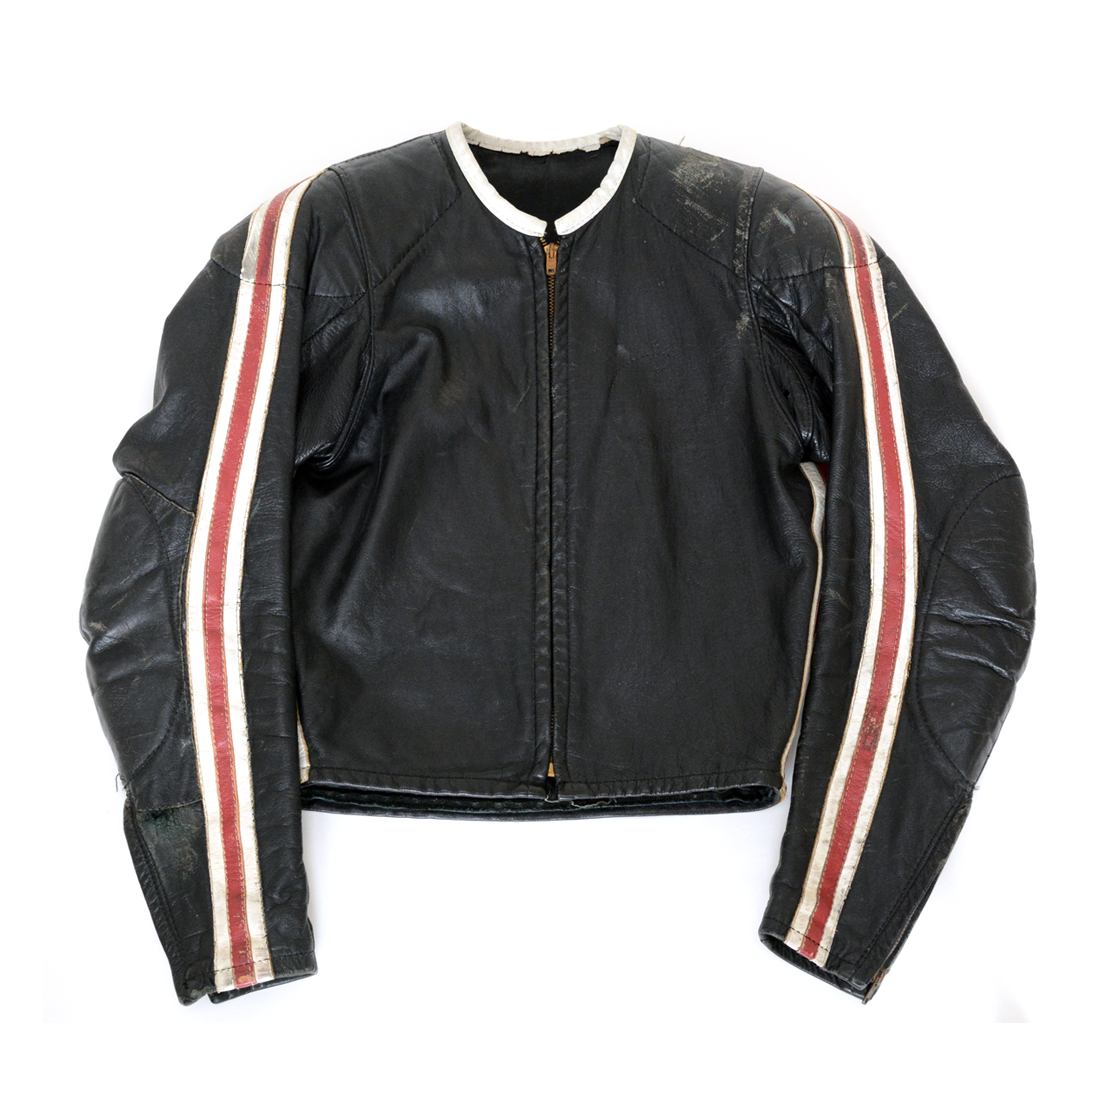 〈ABC Leathers〉Mid 60s-style Stripes Racing Jacket